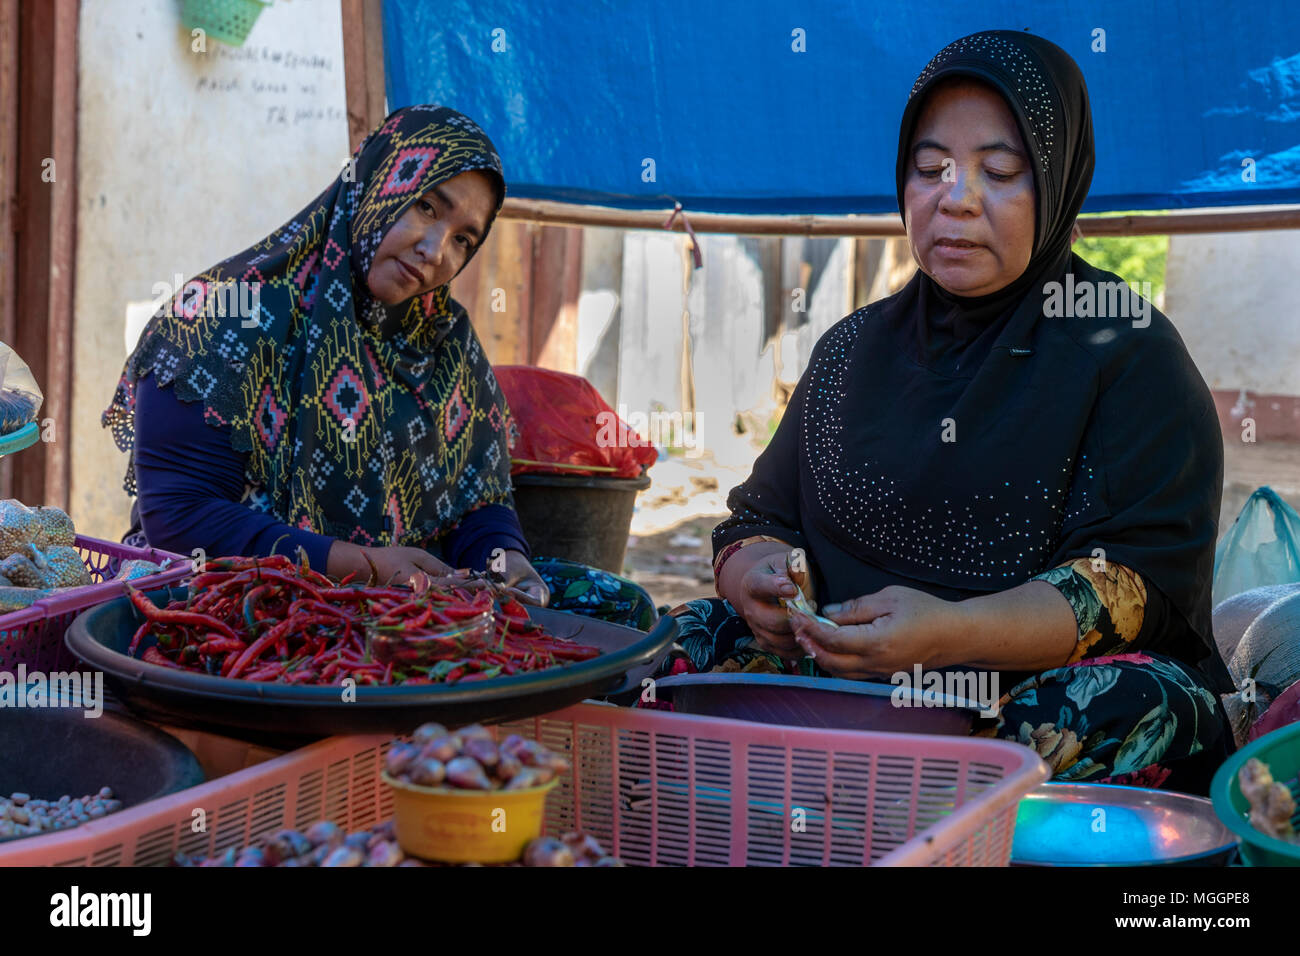 Two Muslim women selling hot peppers at Labuan Bajo food market, Indonesia - Stock Image